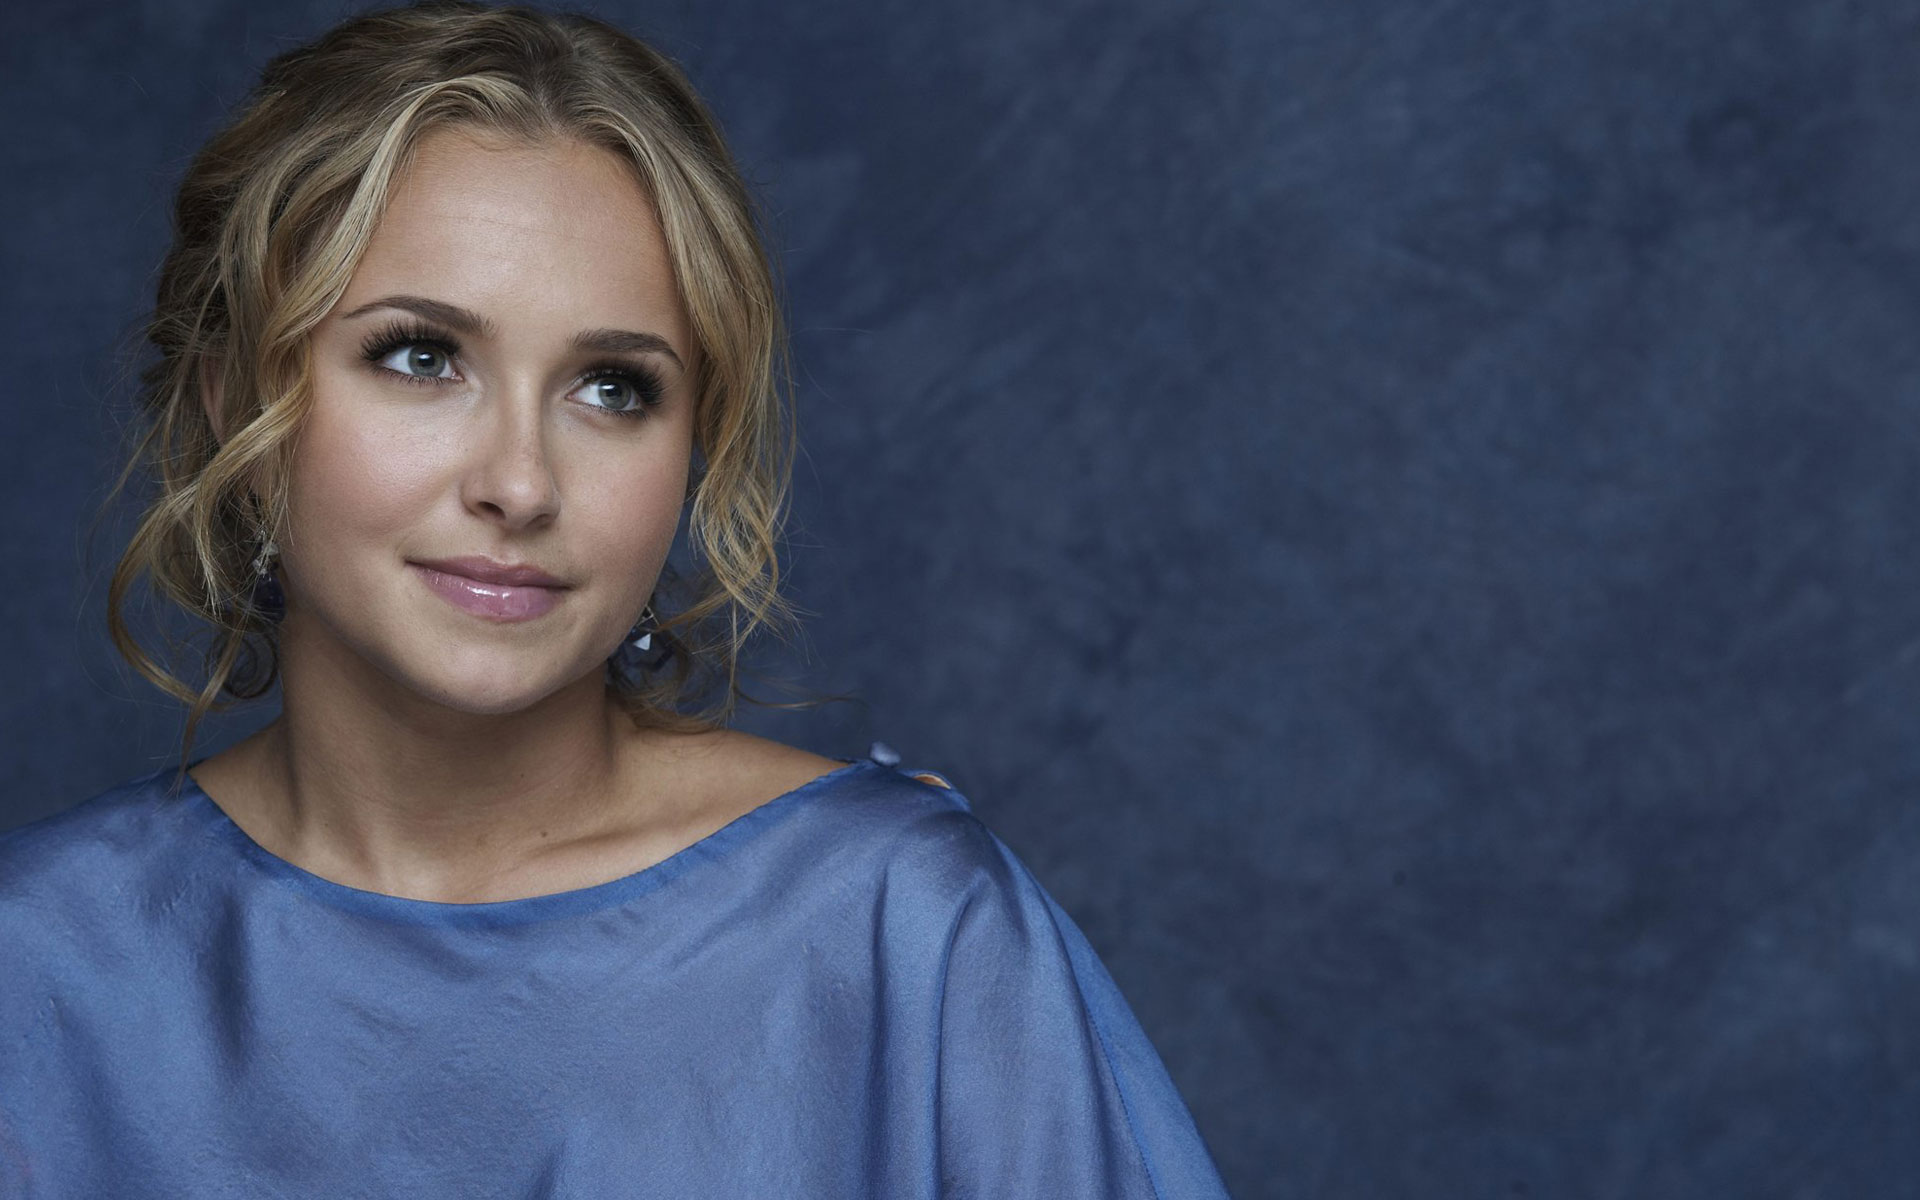 Hayden Panettiere Movies HD Wallpaper Background Images 1920x1200